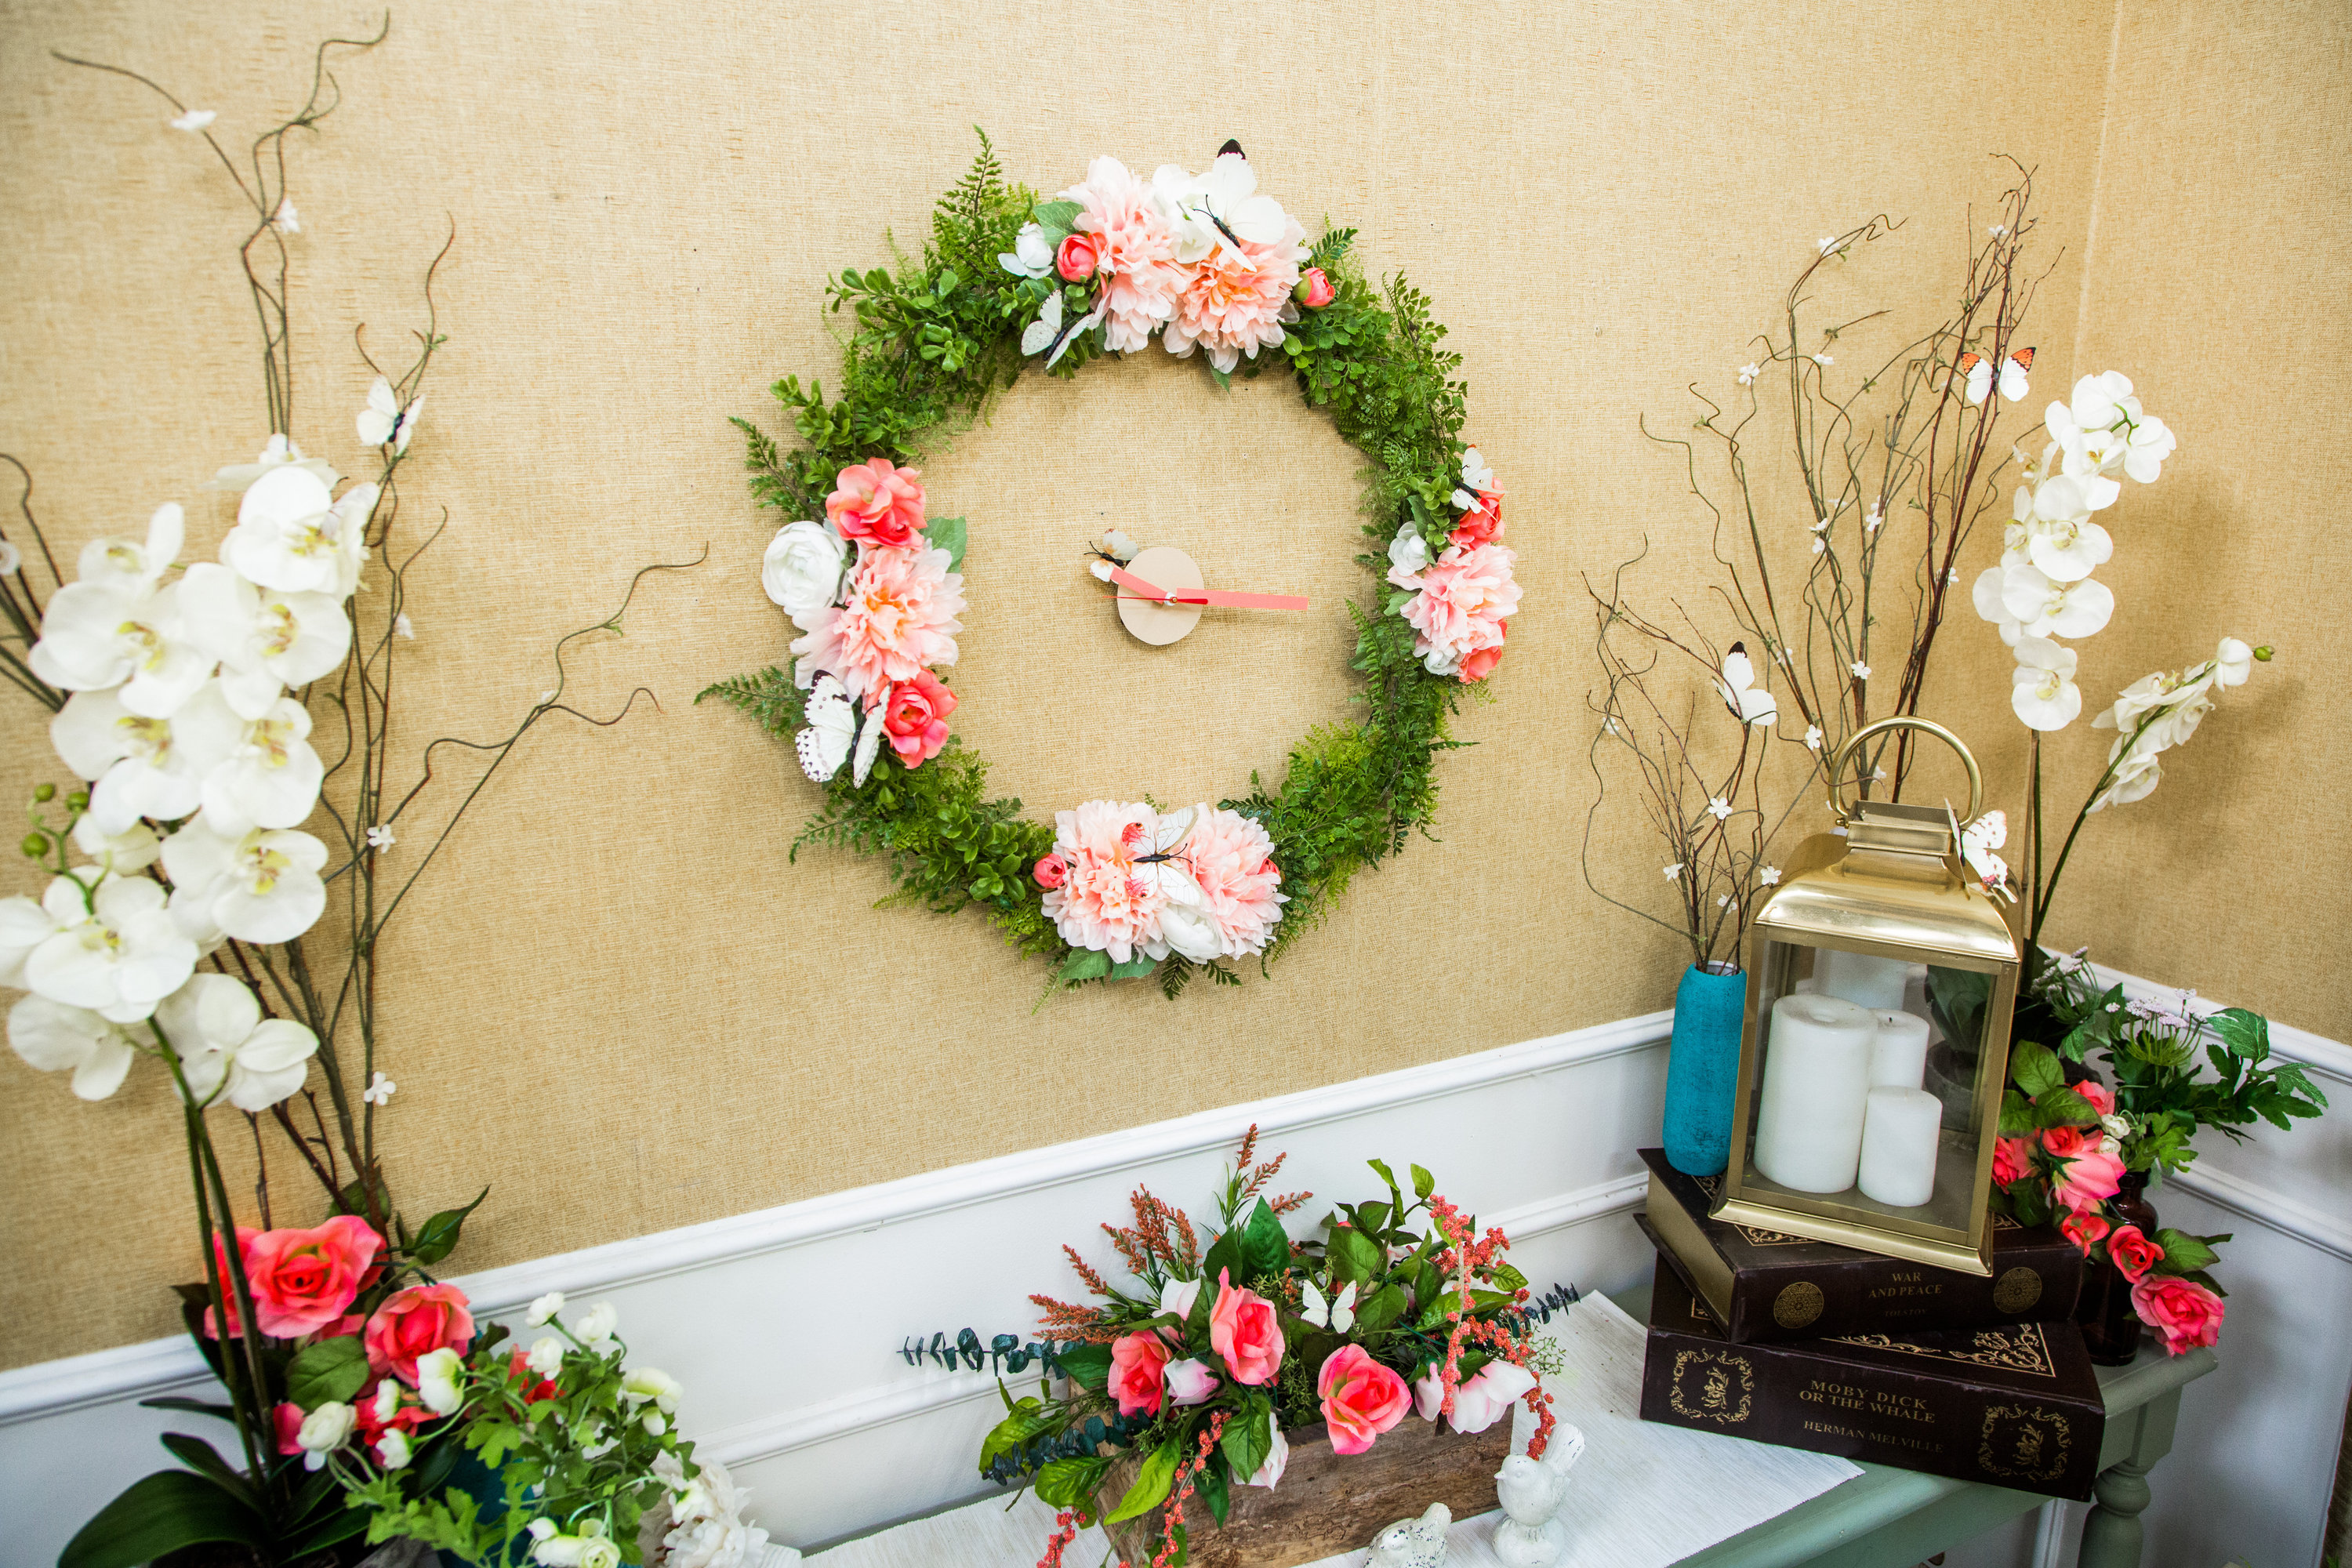 How To - DIY Floral Wall Clock | Hallmark Channel